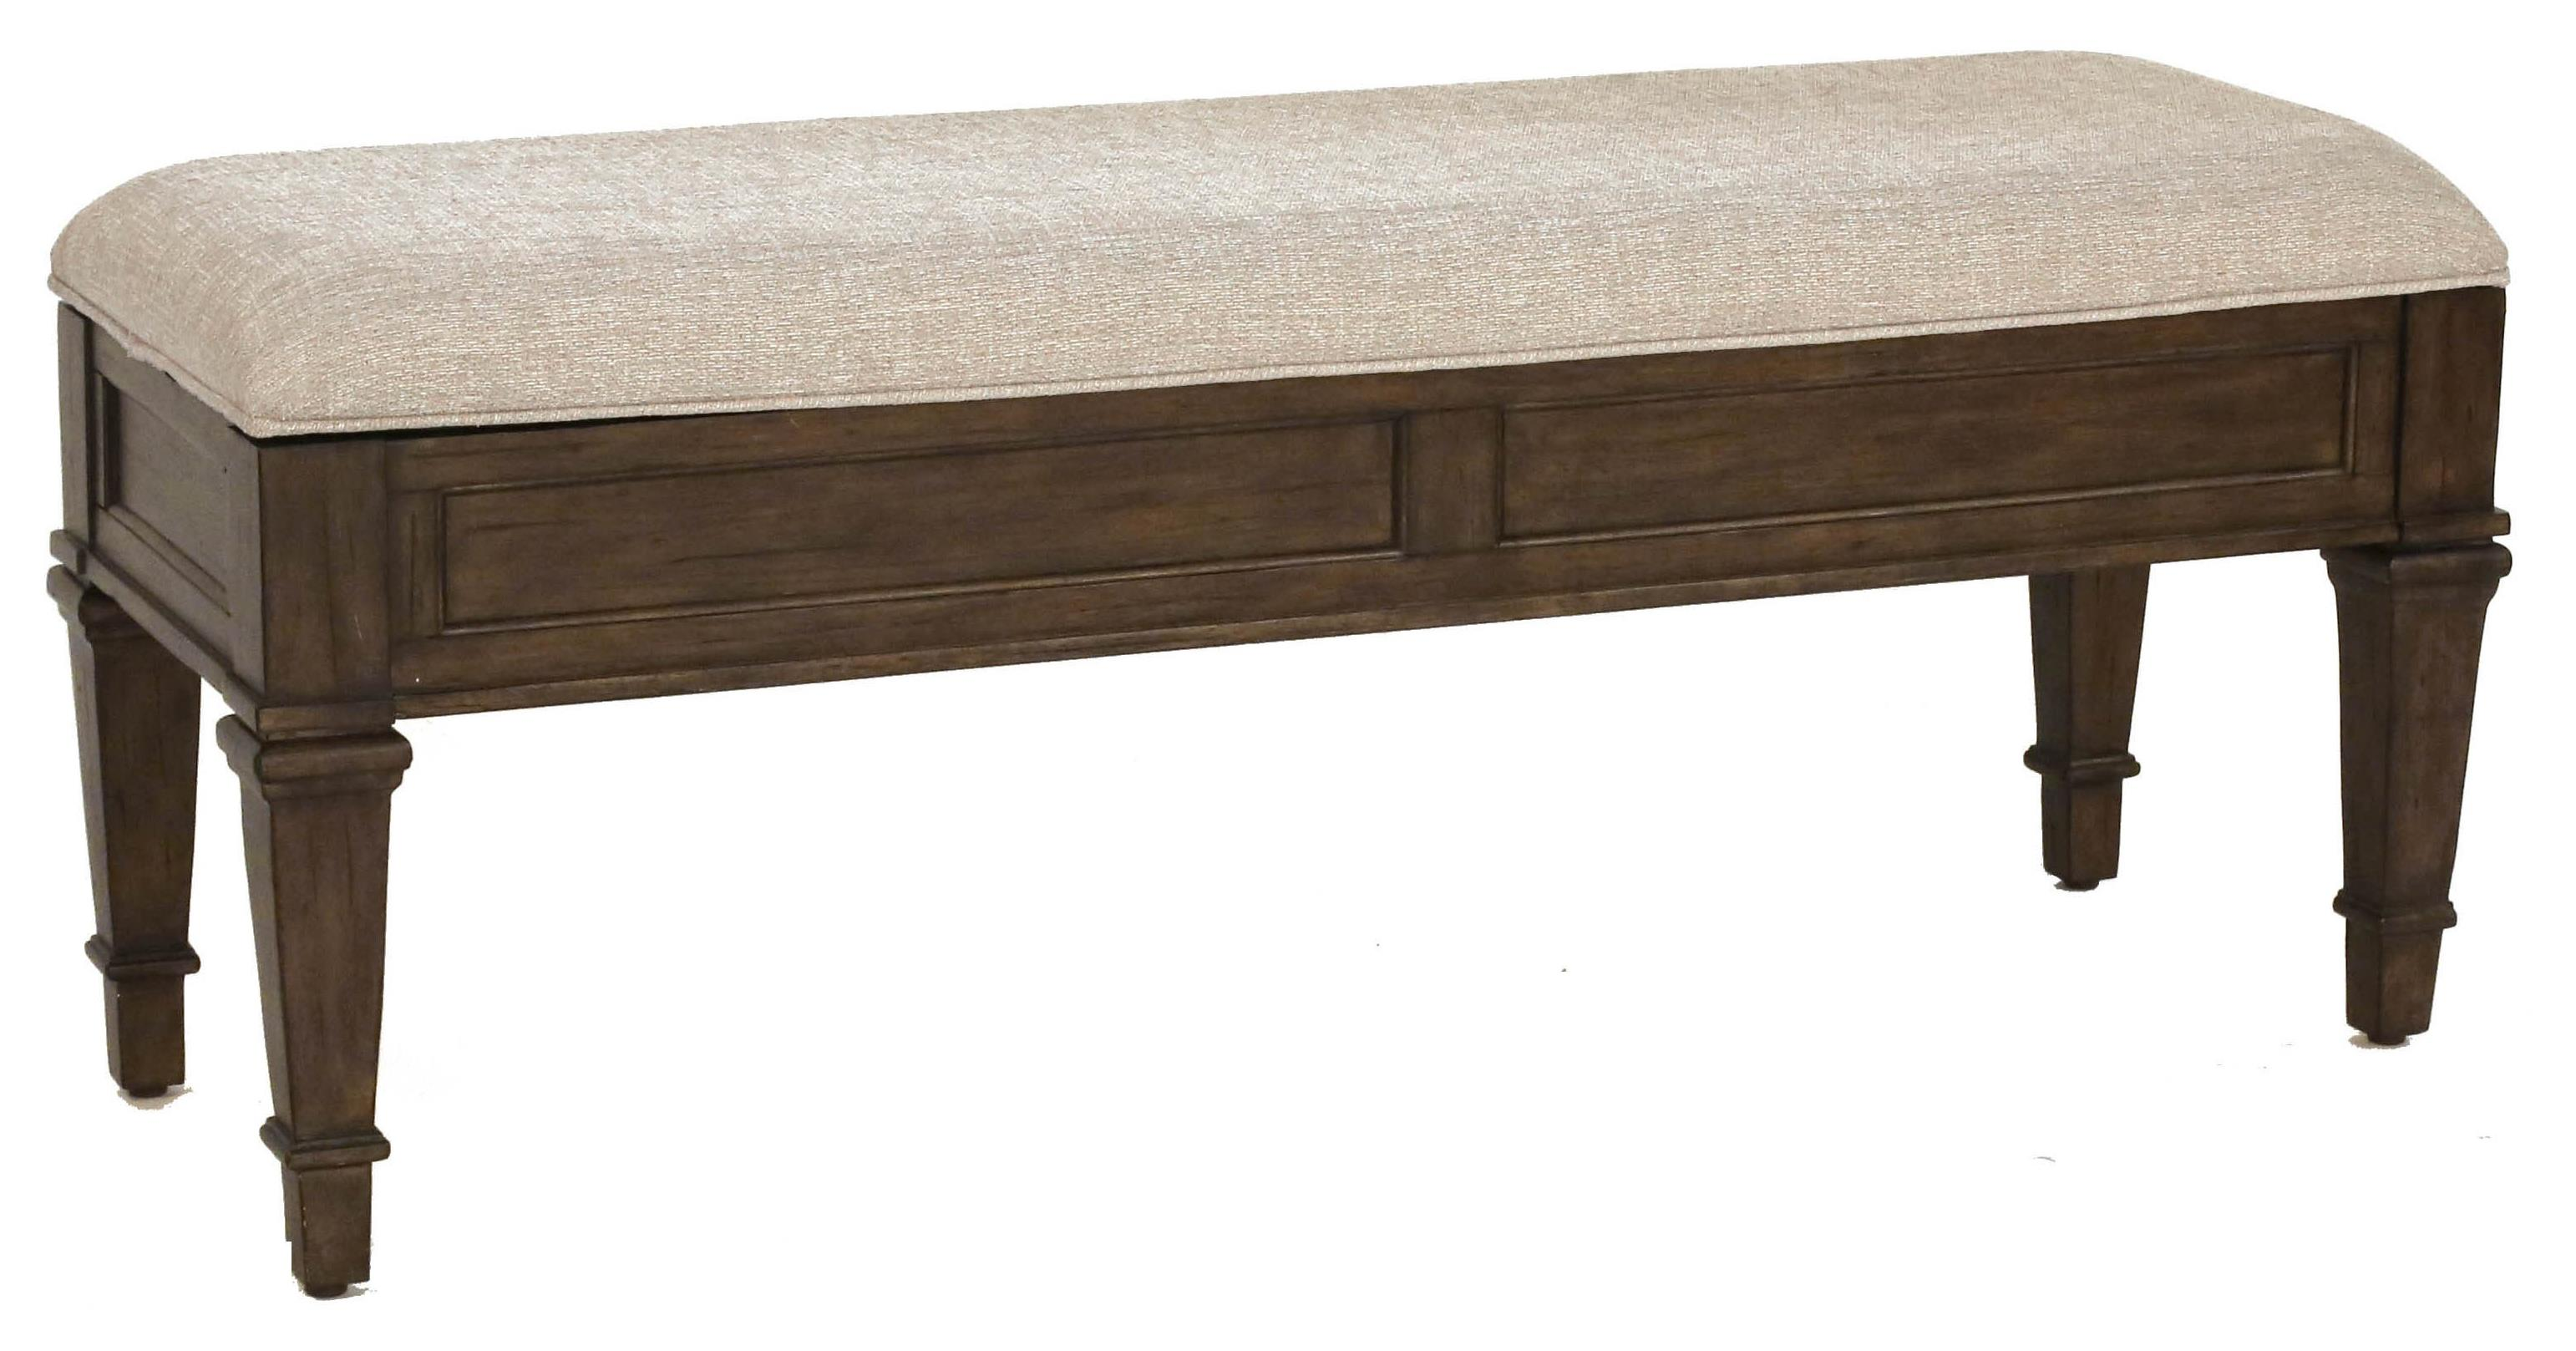 Solid Mahogany Upholstered Storage Bench With Piano Hinge